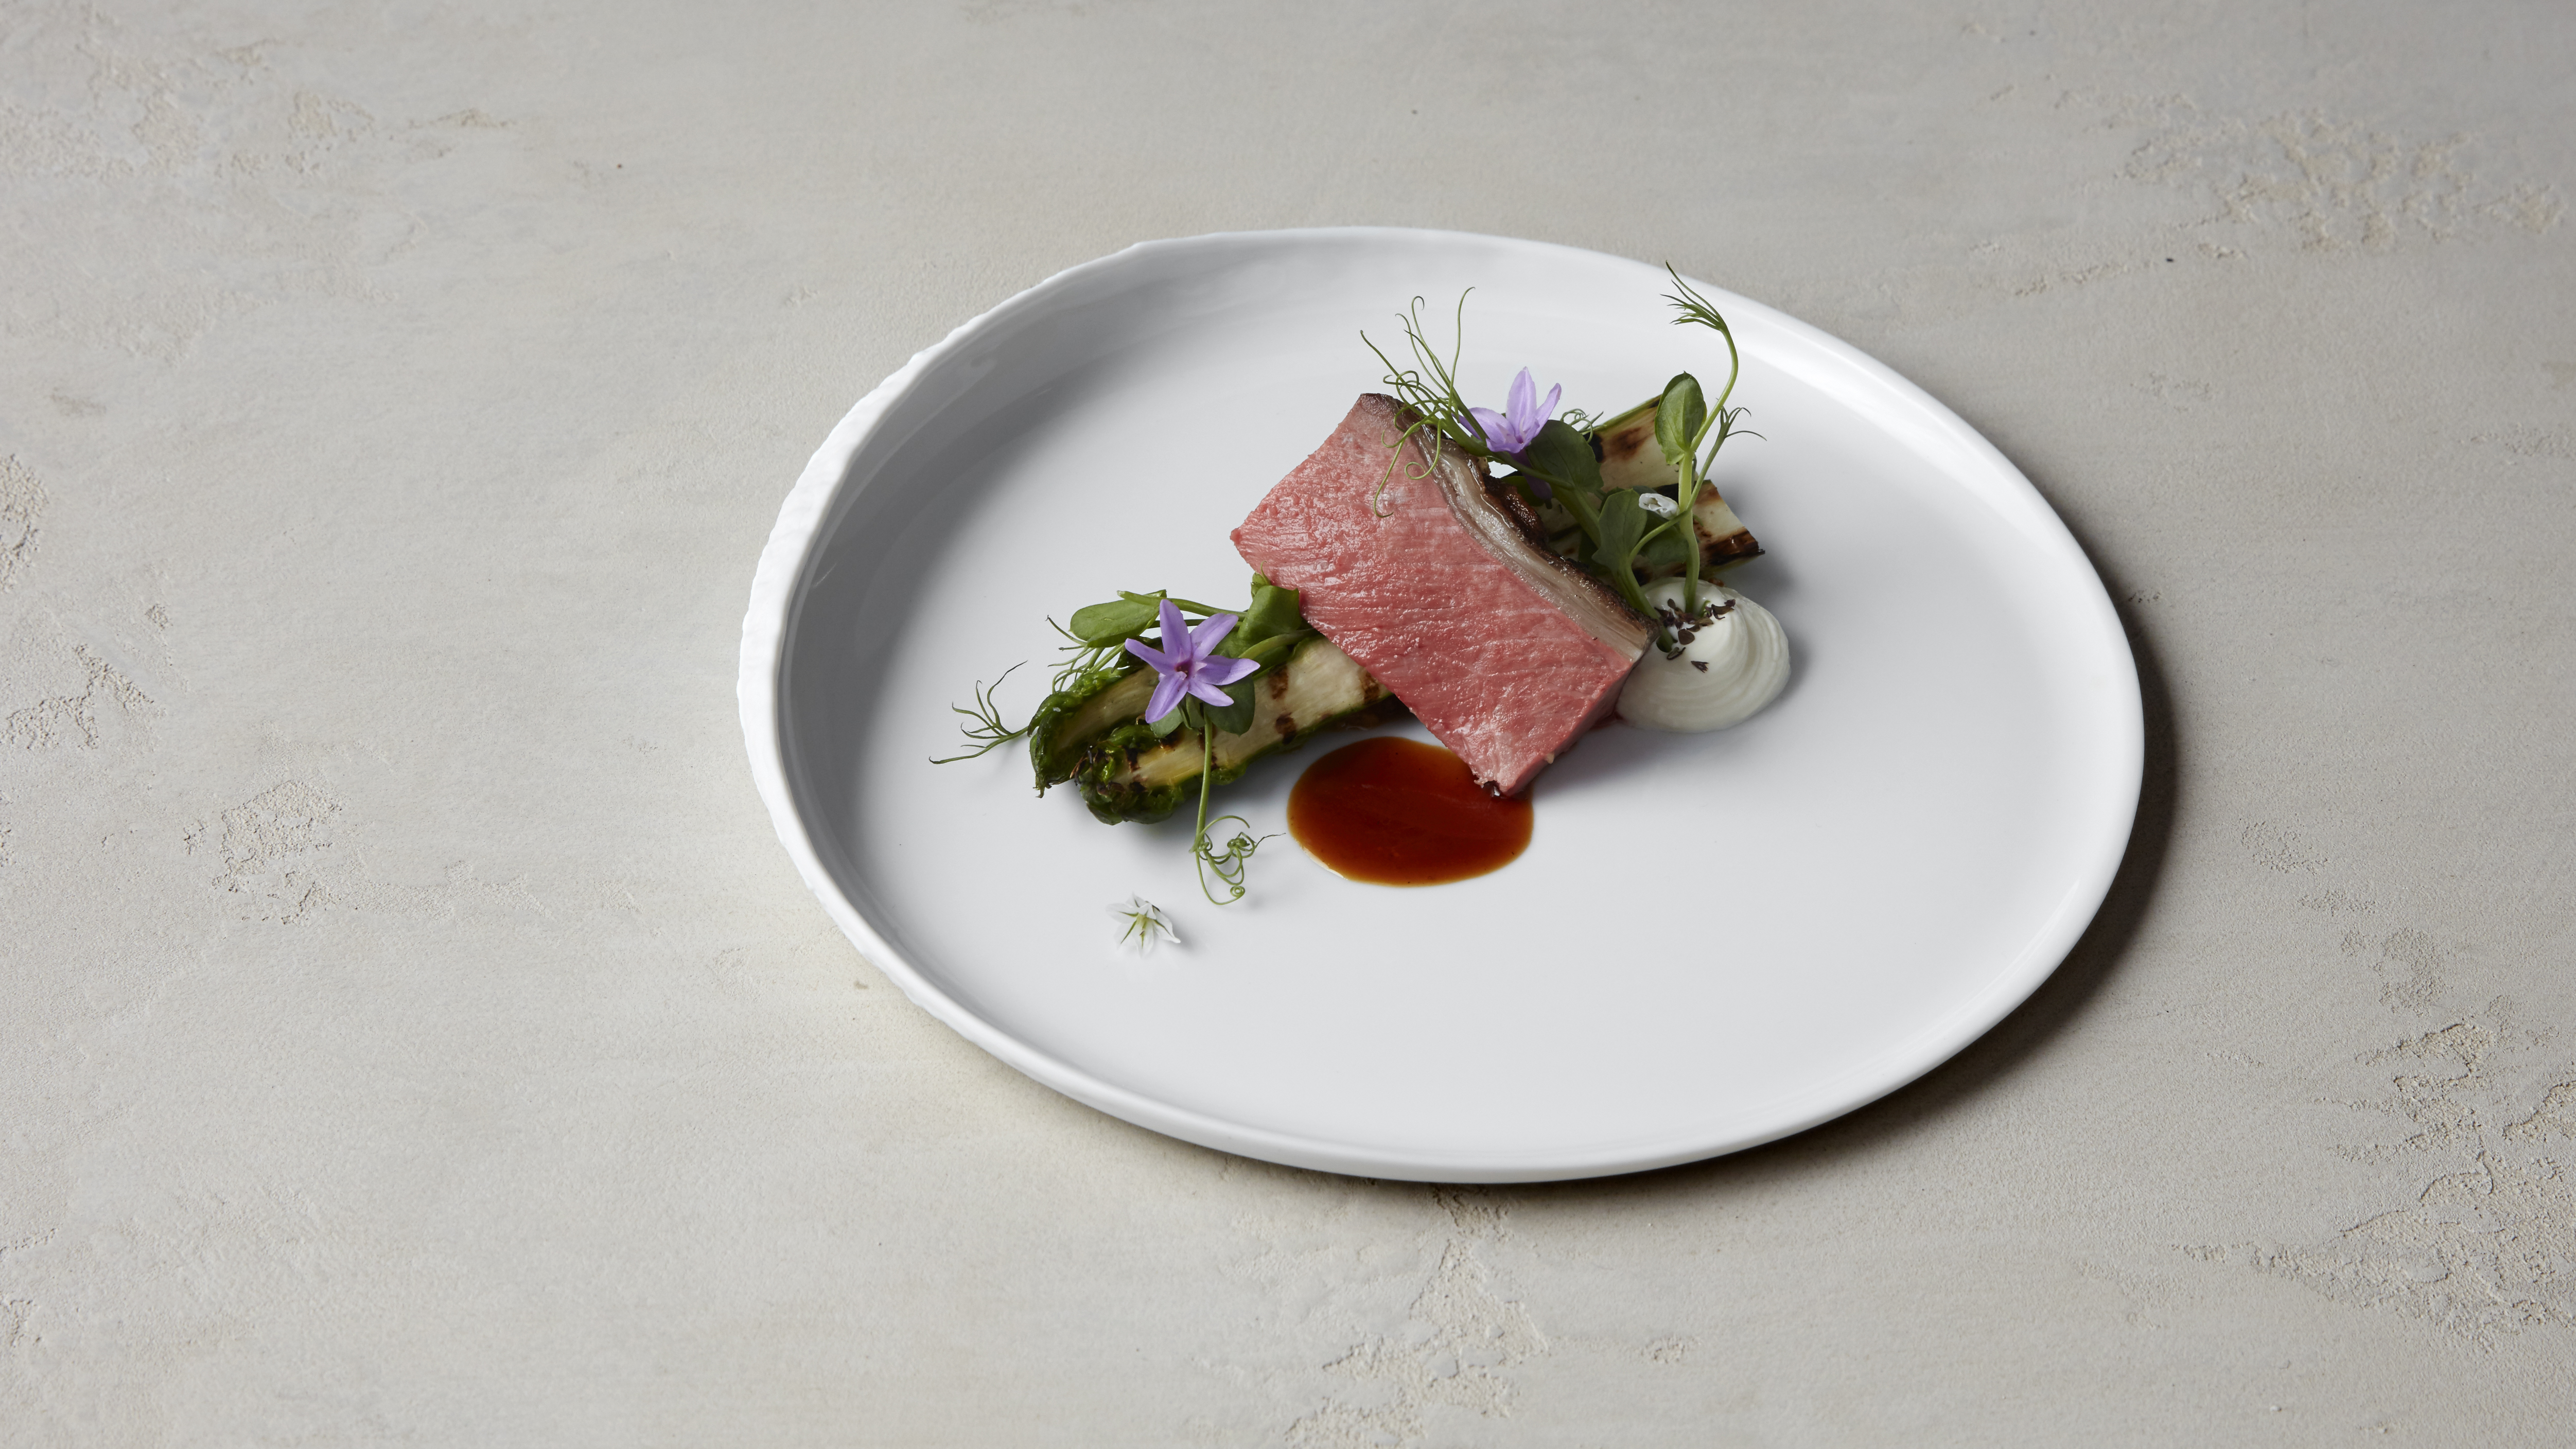 Barbecued organic Herdwick lamb, charred asparagus, savoury pine nut praline by chef Luke Selby, Hide Above